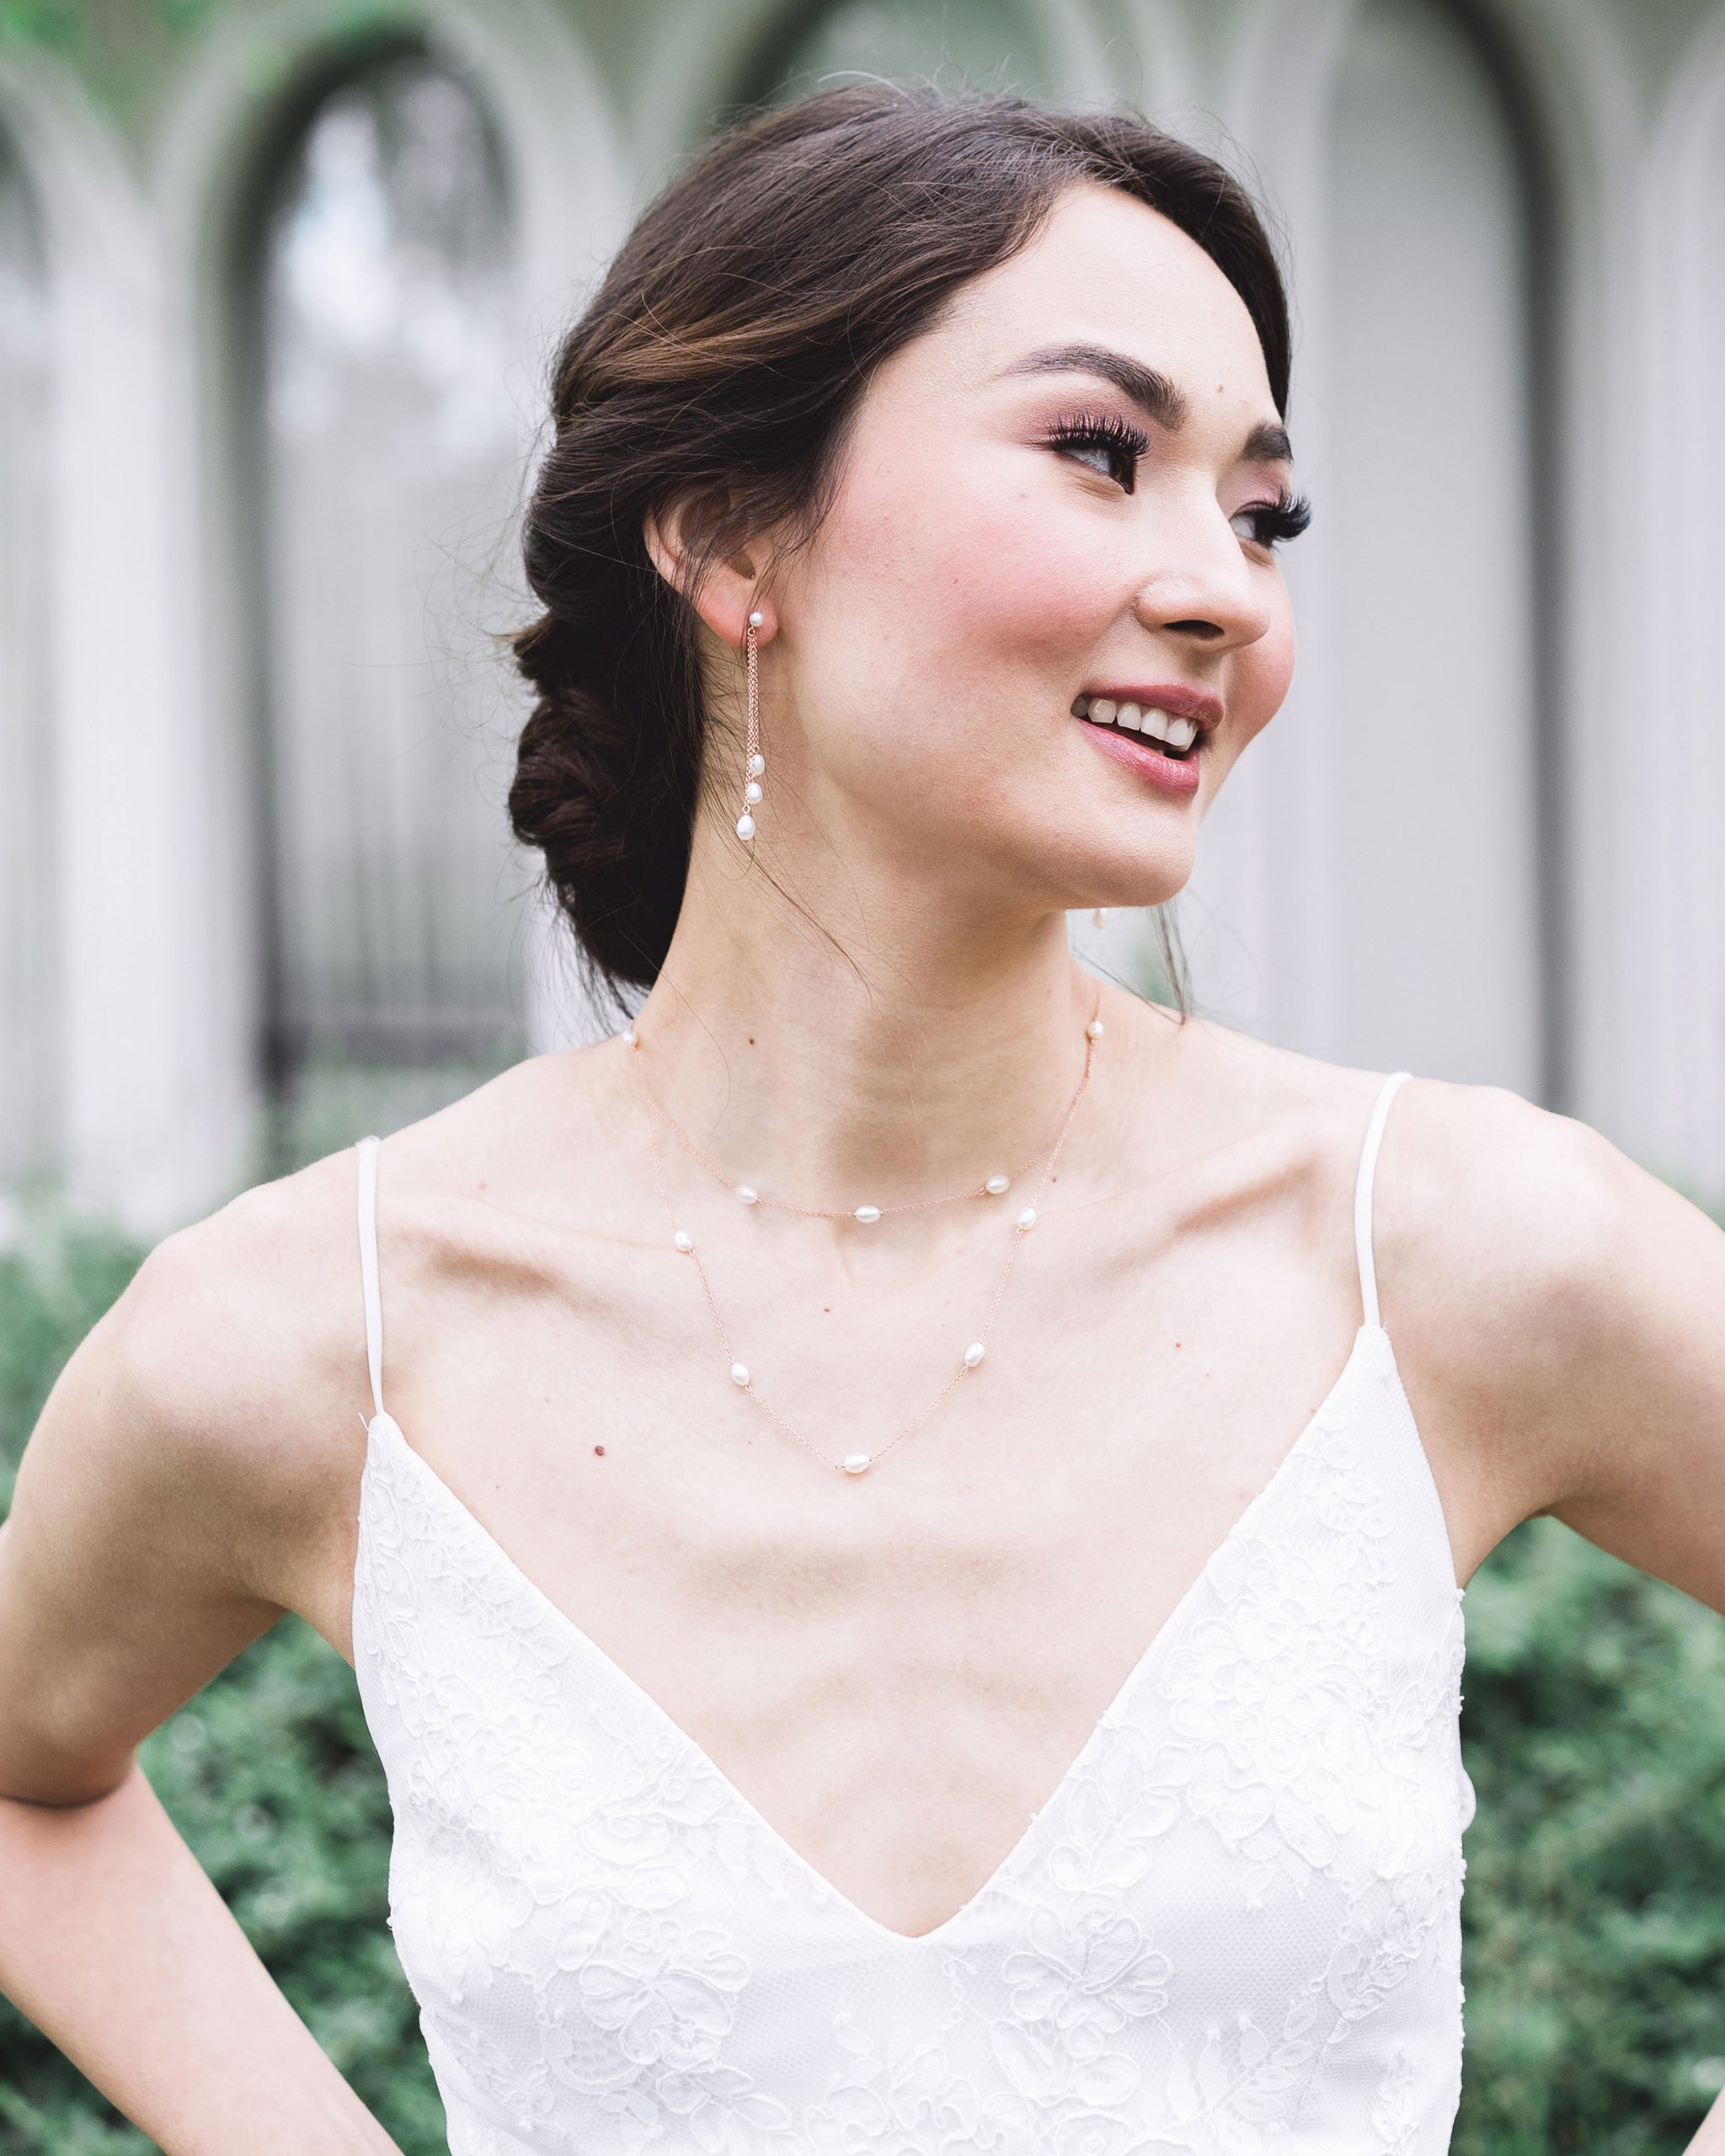 model wearing the dainty pearl layered necklace in rose gold, paired with the matching dainty pearl trio earrings.